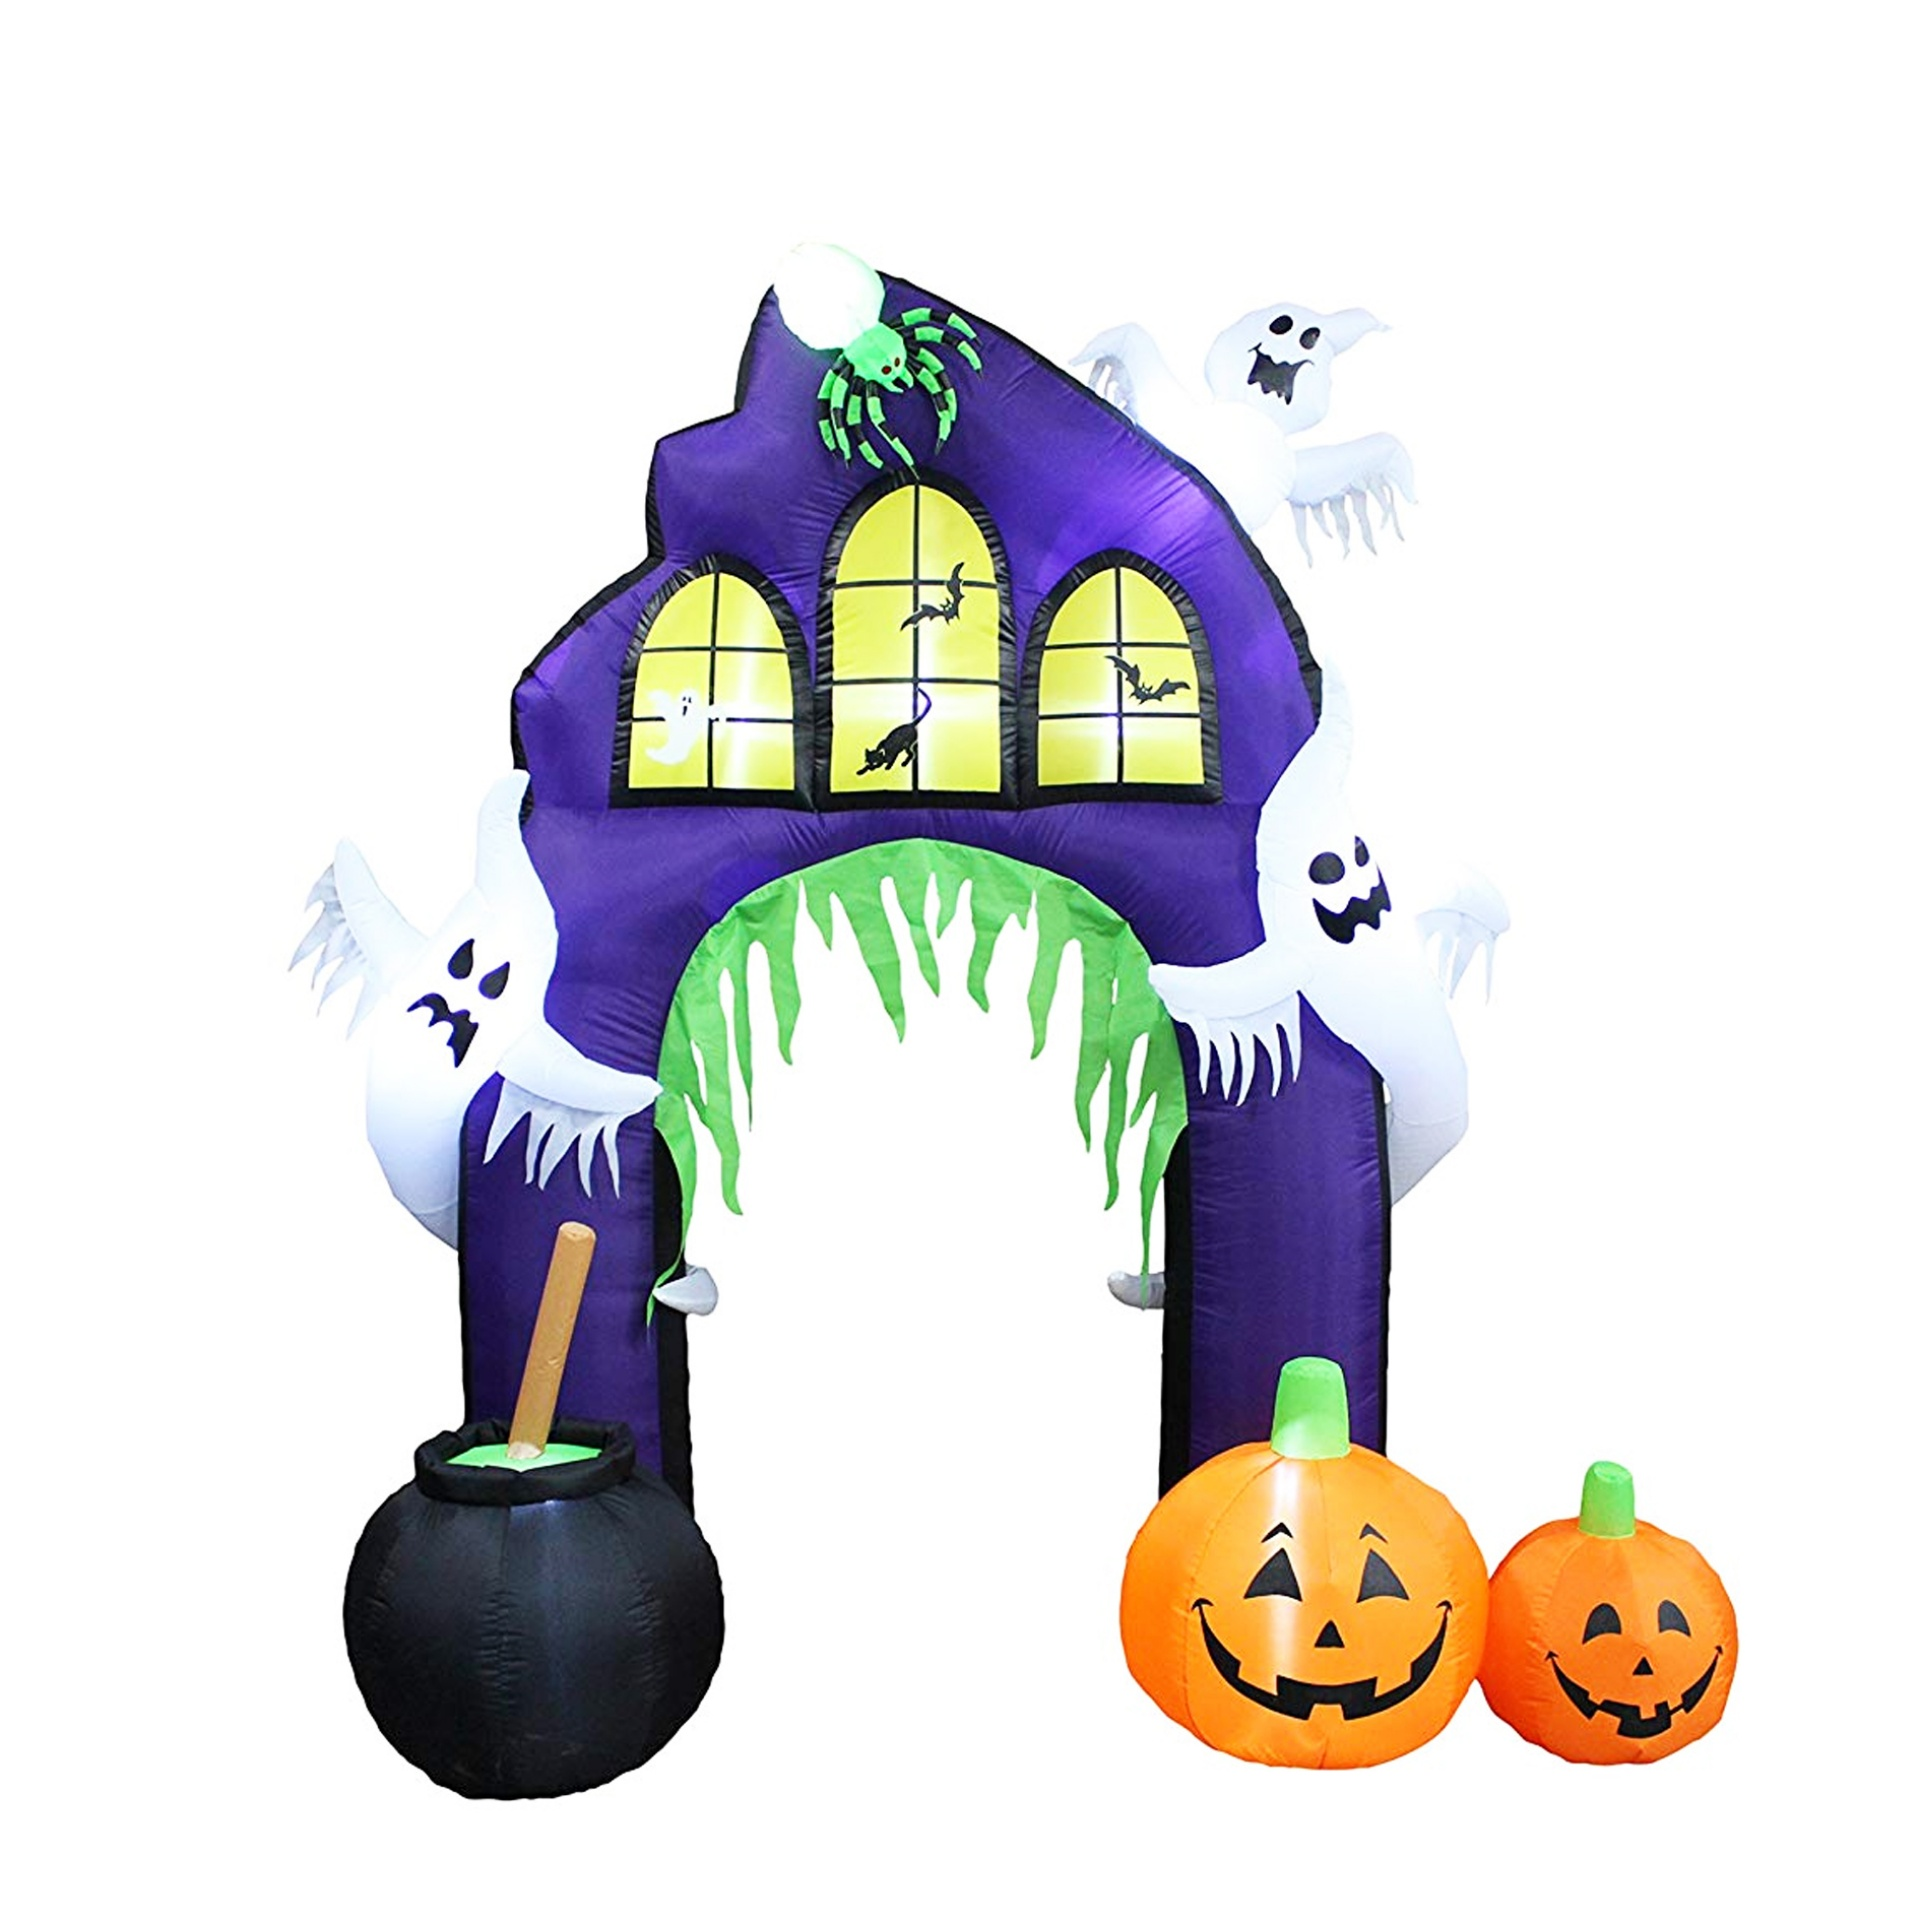 Halloween inflatable castle arches are decorated with jack-o '-lanterns and ghost LED lights dr